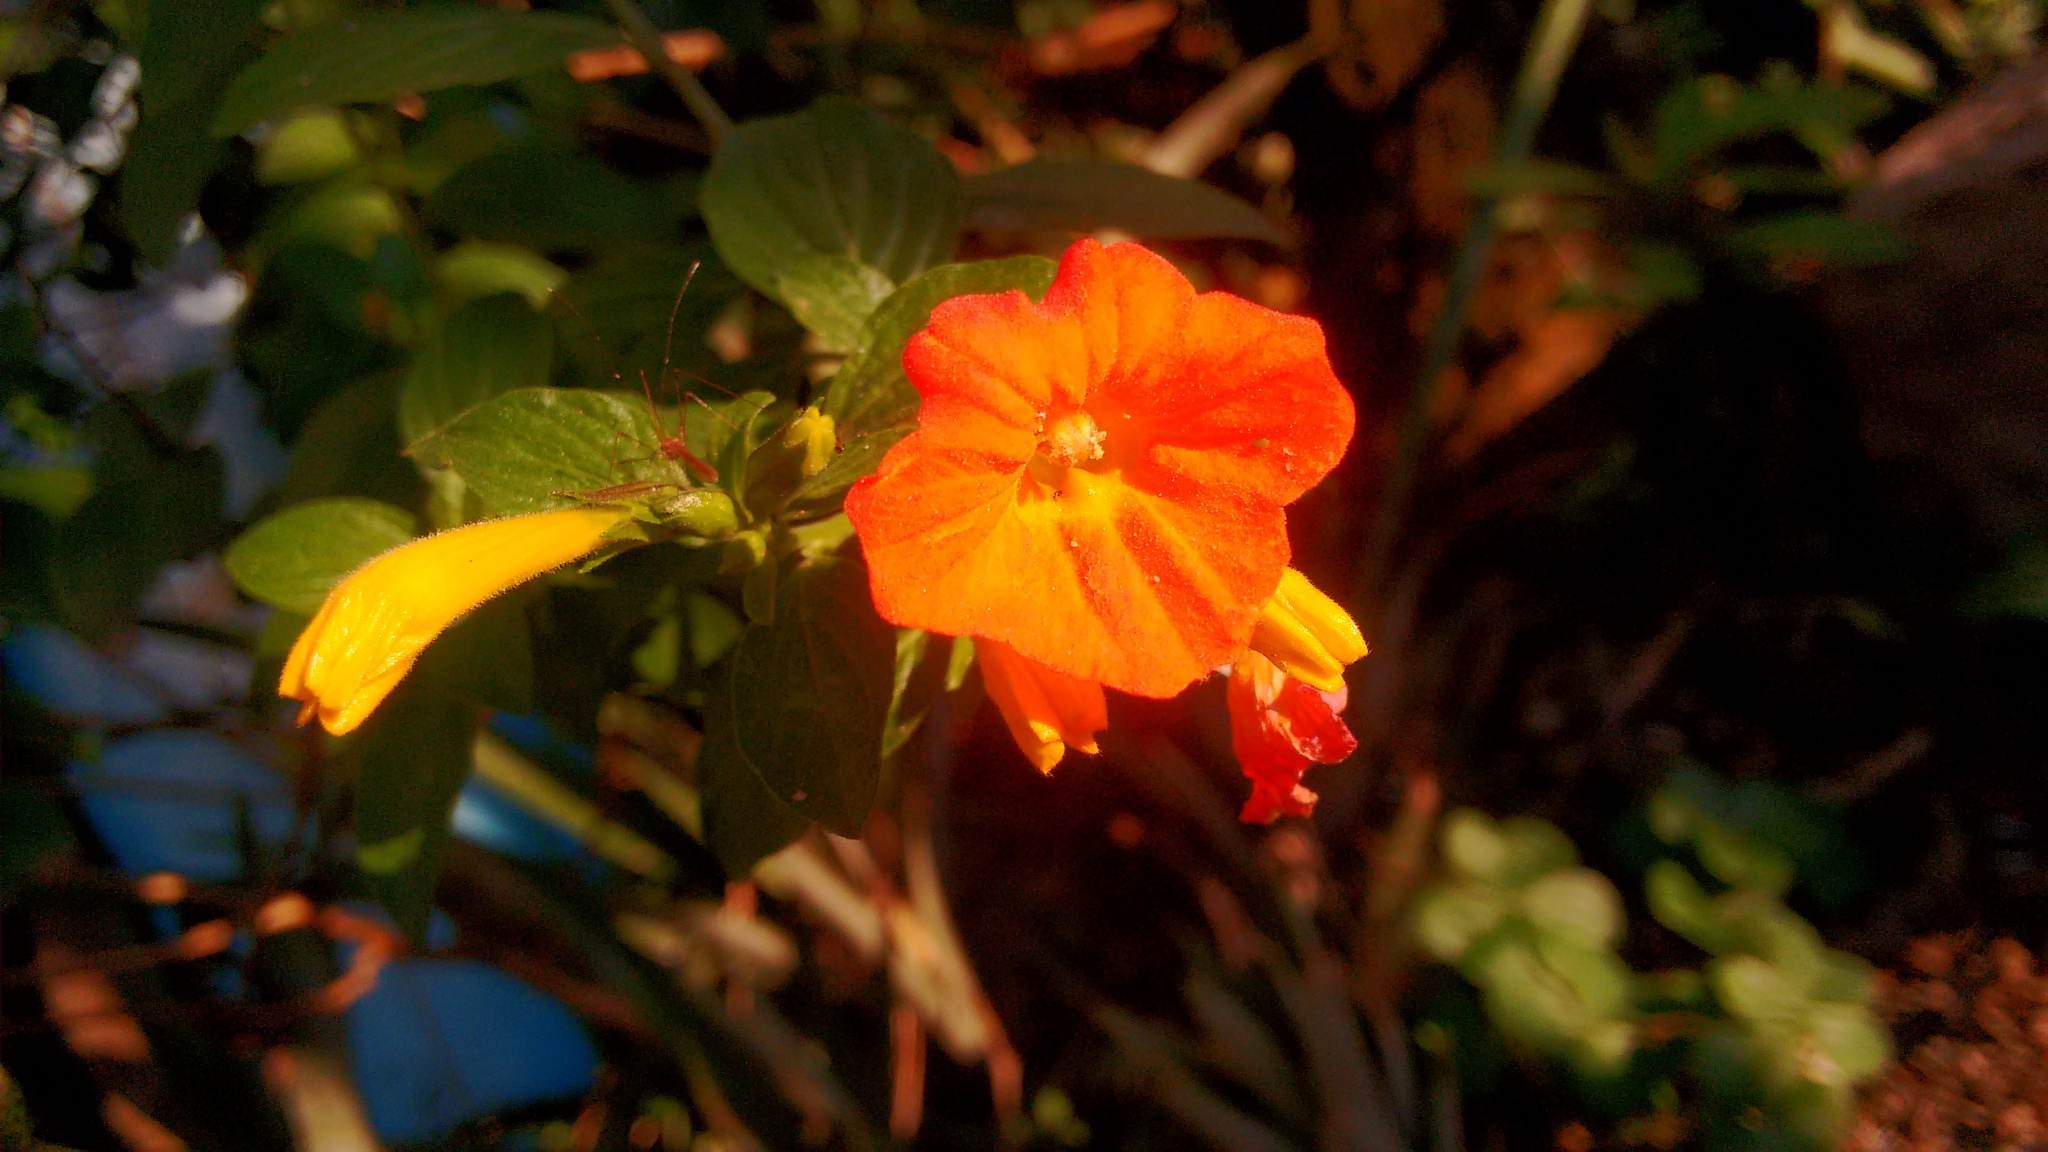 Orange flower by marcelooliveirra